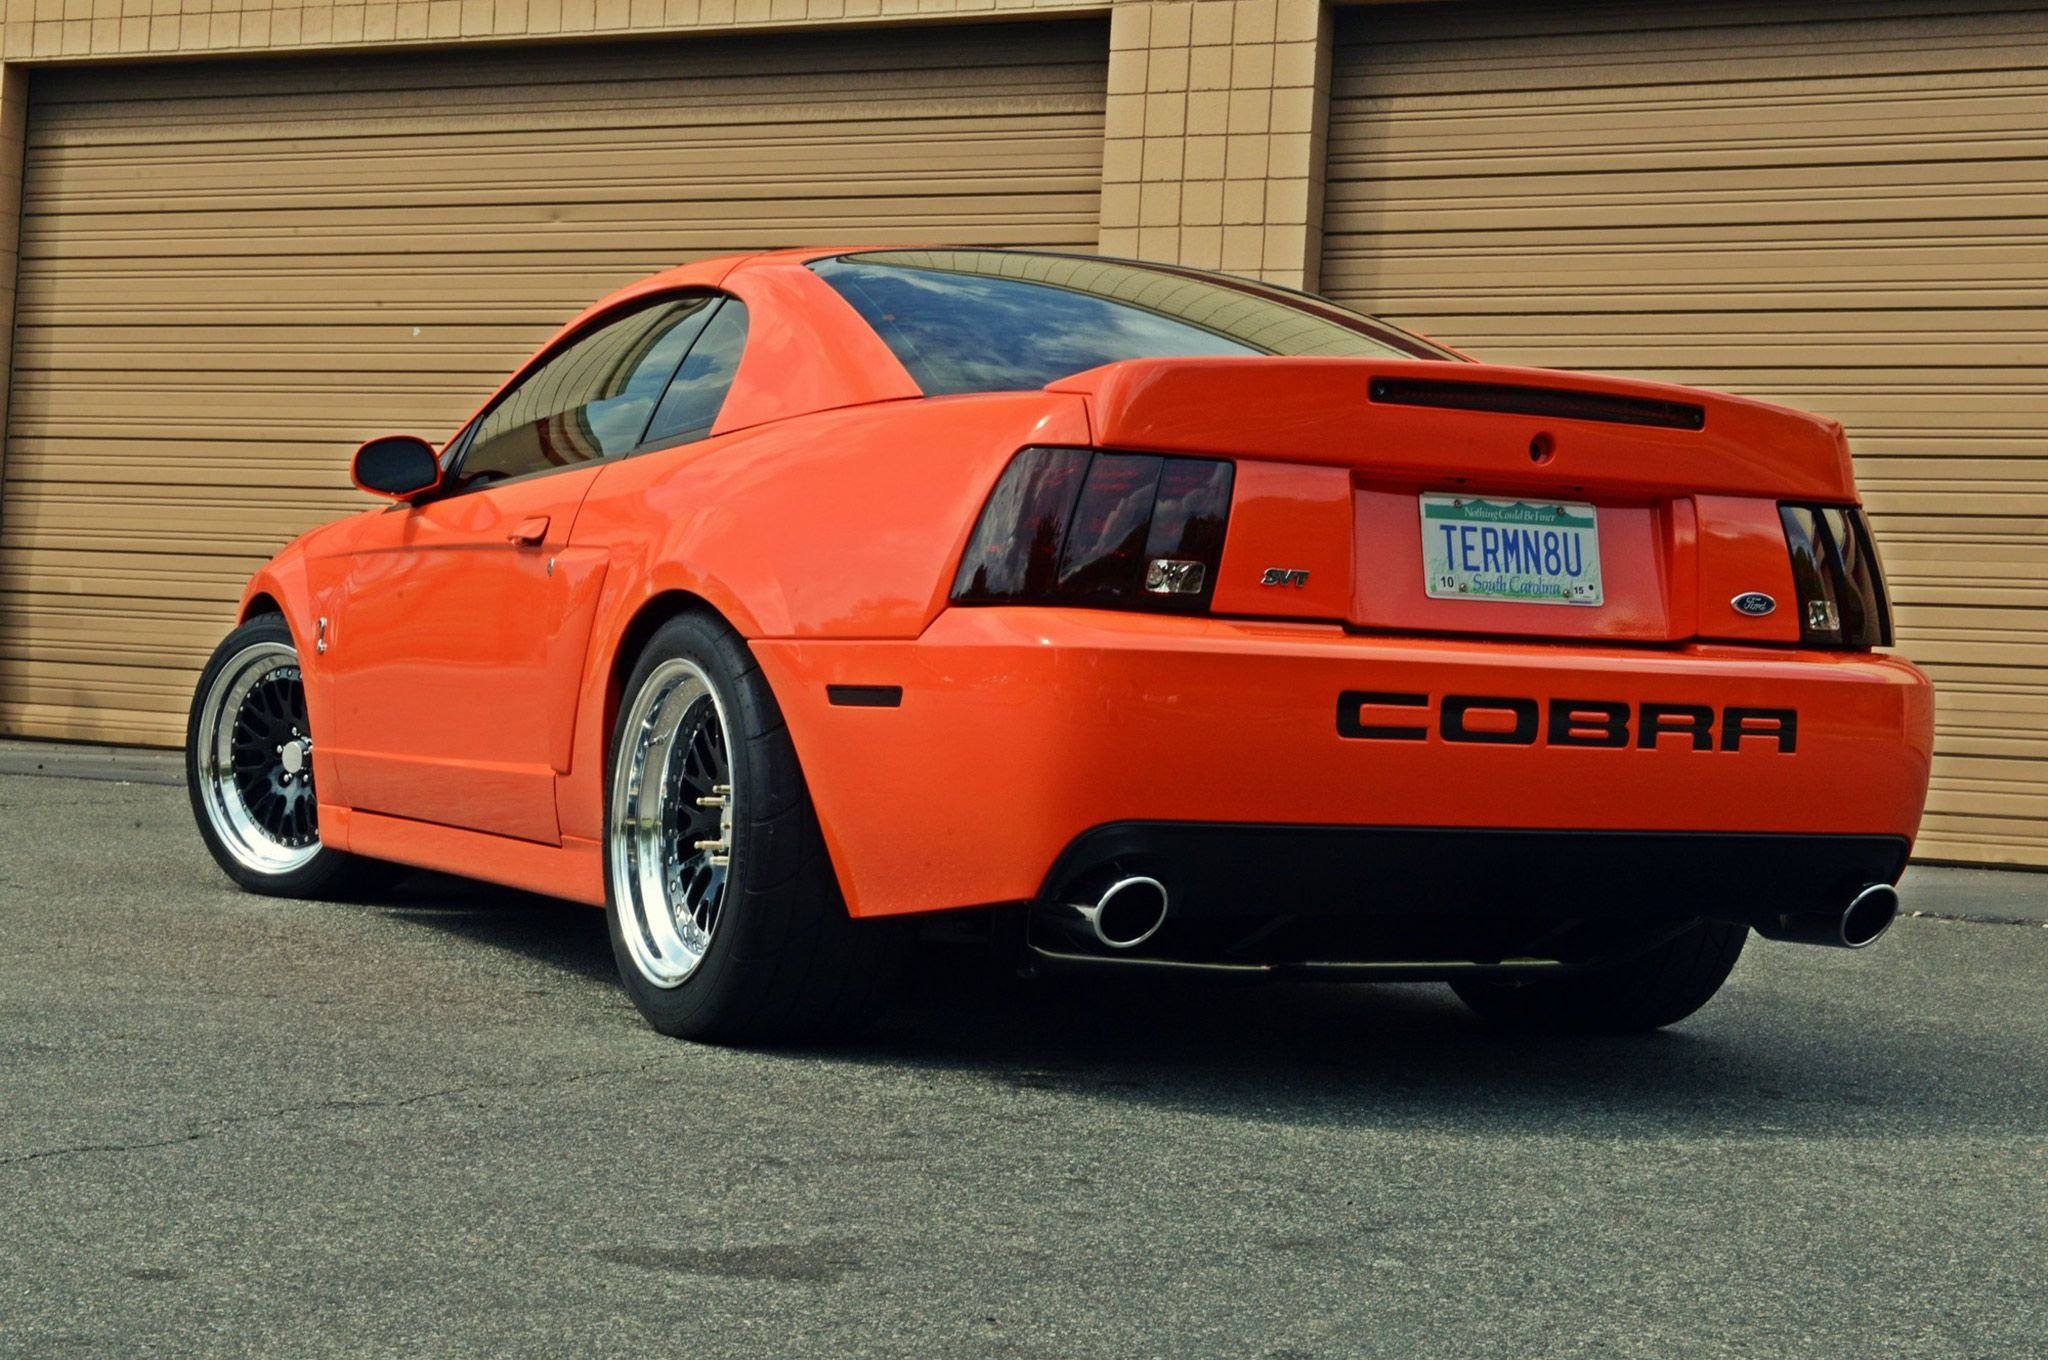 2004 Ford Mustang Gt Cobra Competition Super Street Pro Touring Usa 10 Wallpaper 2048x1360 851915 Wallpaperup